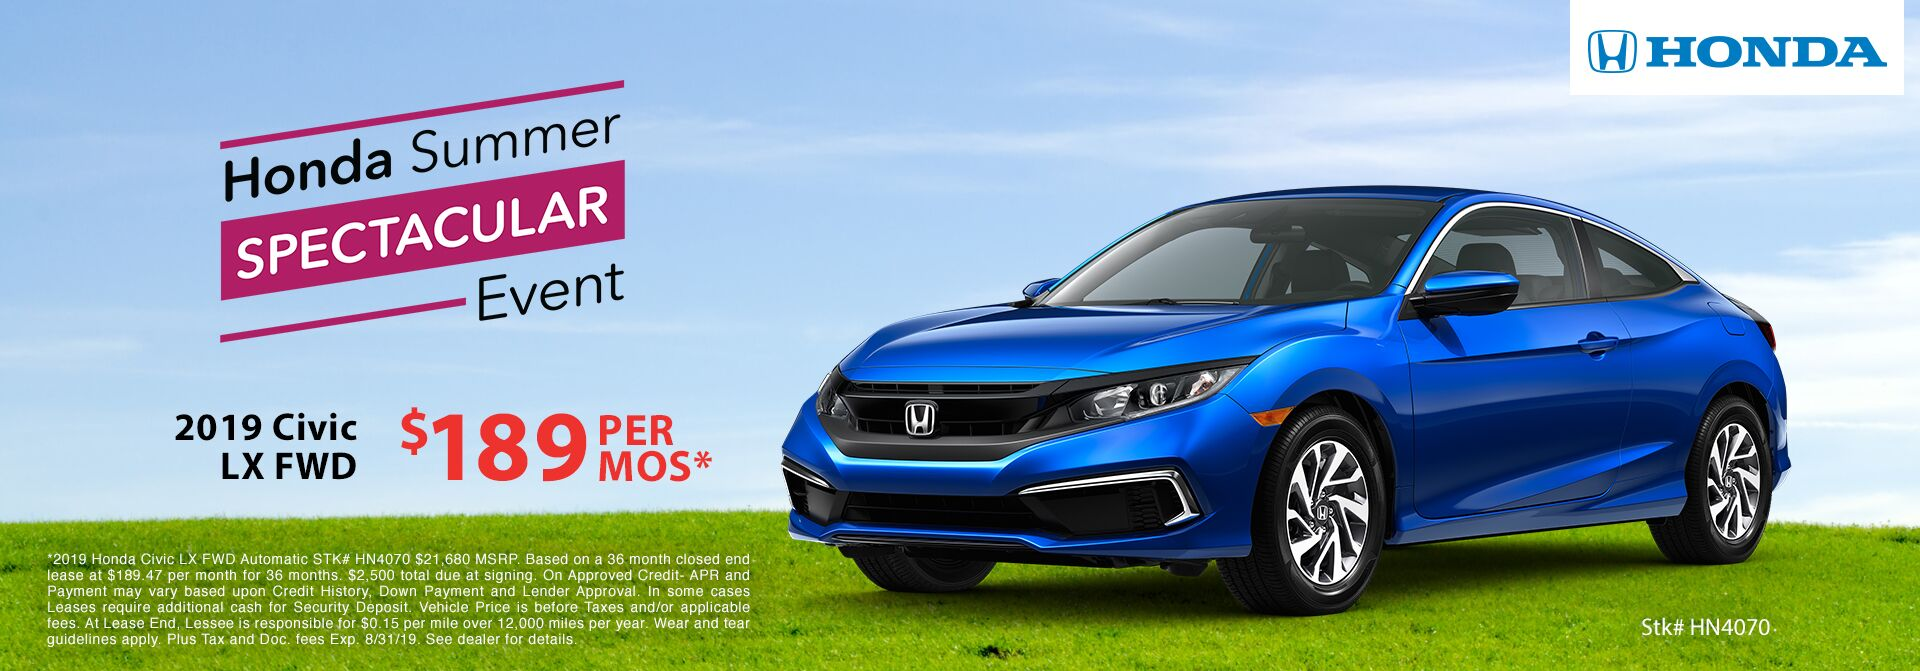 Honda Summer Event 2019 Civic